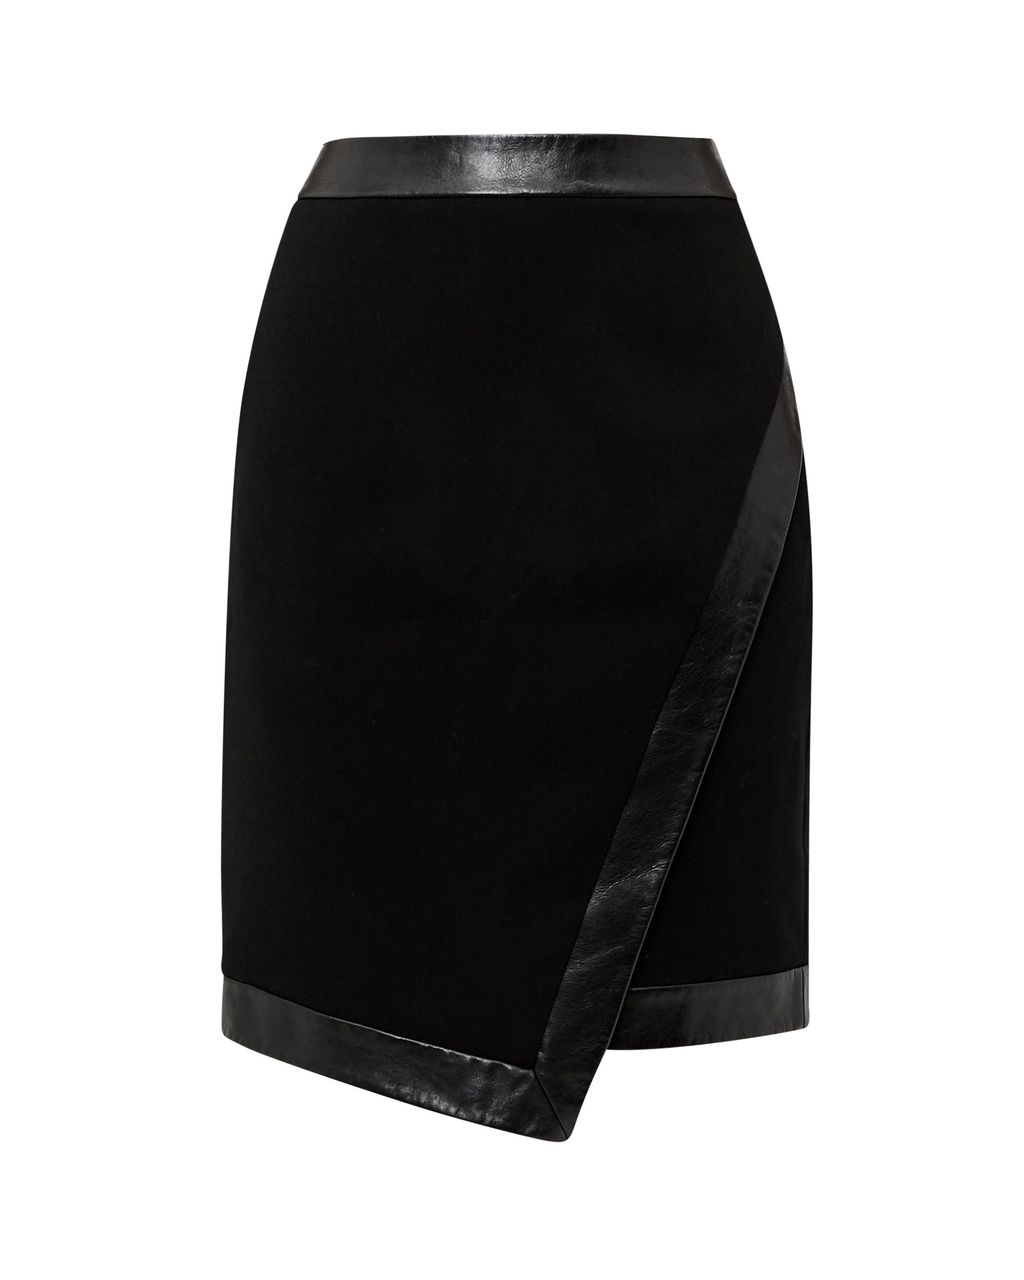 Poppee Asymmetric Skirt, Black - pattern: plain; fit: tailored/fitted; waist: high rise; predominant colour: black; occasions: evening, creative work; length: just above the knee; style: asymmetric (hem); fibres: polyester/polyamide - 100%; texture group: crepes; pattern type: fabric; wardrobe: basic; season: a/w 2016